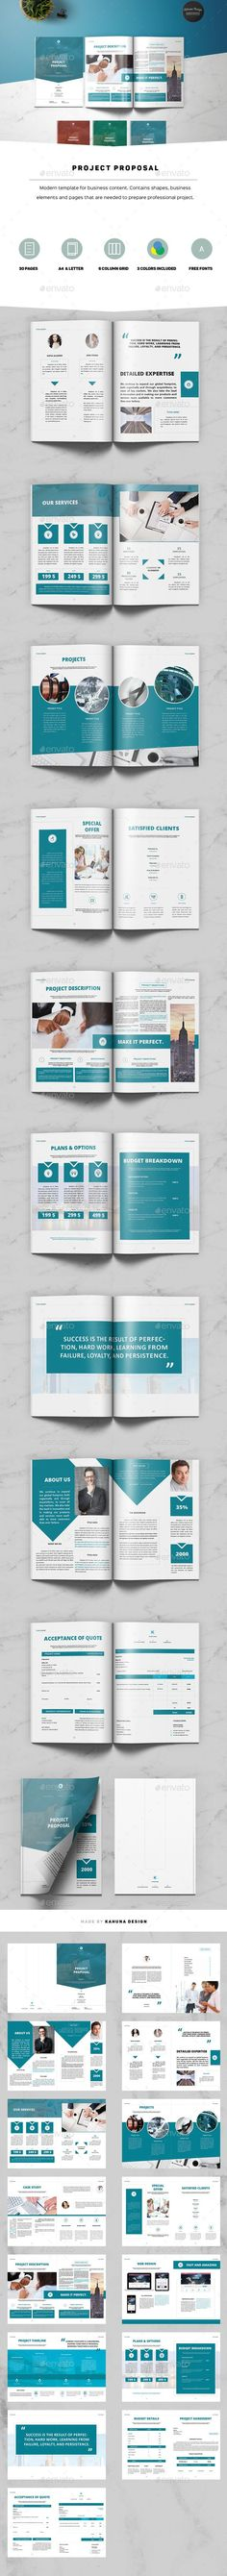 Buy Project Proposal by Kahuna_Design on GraphicRiver. OFF LIMITED TIME ONLY!Project ProposalProject Proposal was designed as an universal template with original struct. Invoice Design Template, Stationery Templates, Stationery Design, Brochure Template, Print Design, Web Design, Graphic Design, Best Proposals, Project Proposal